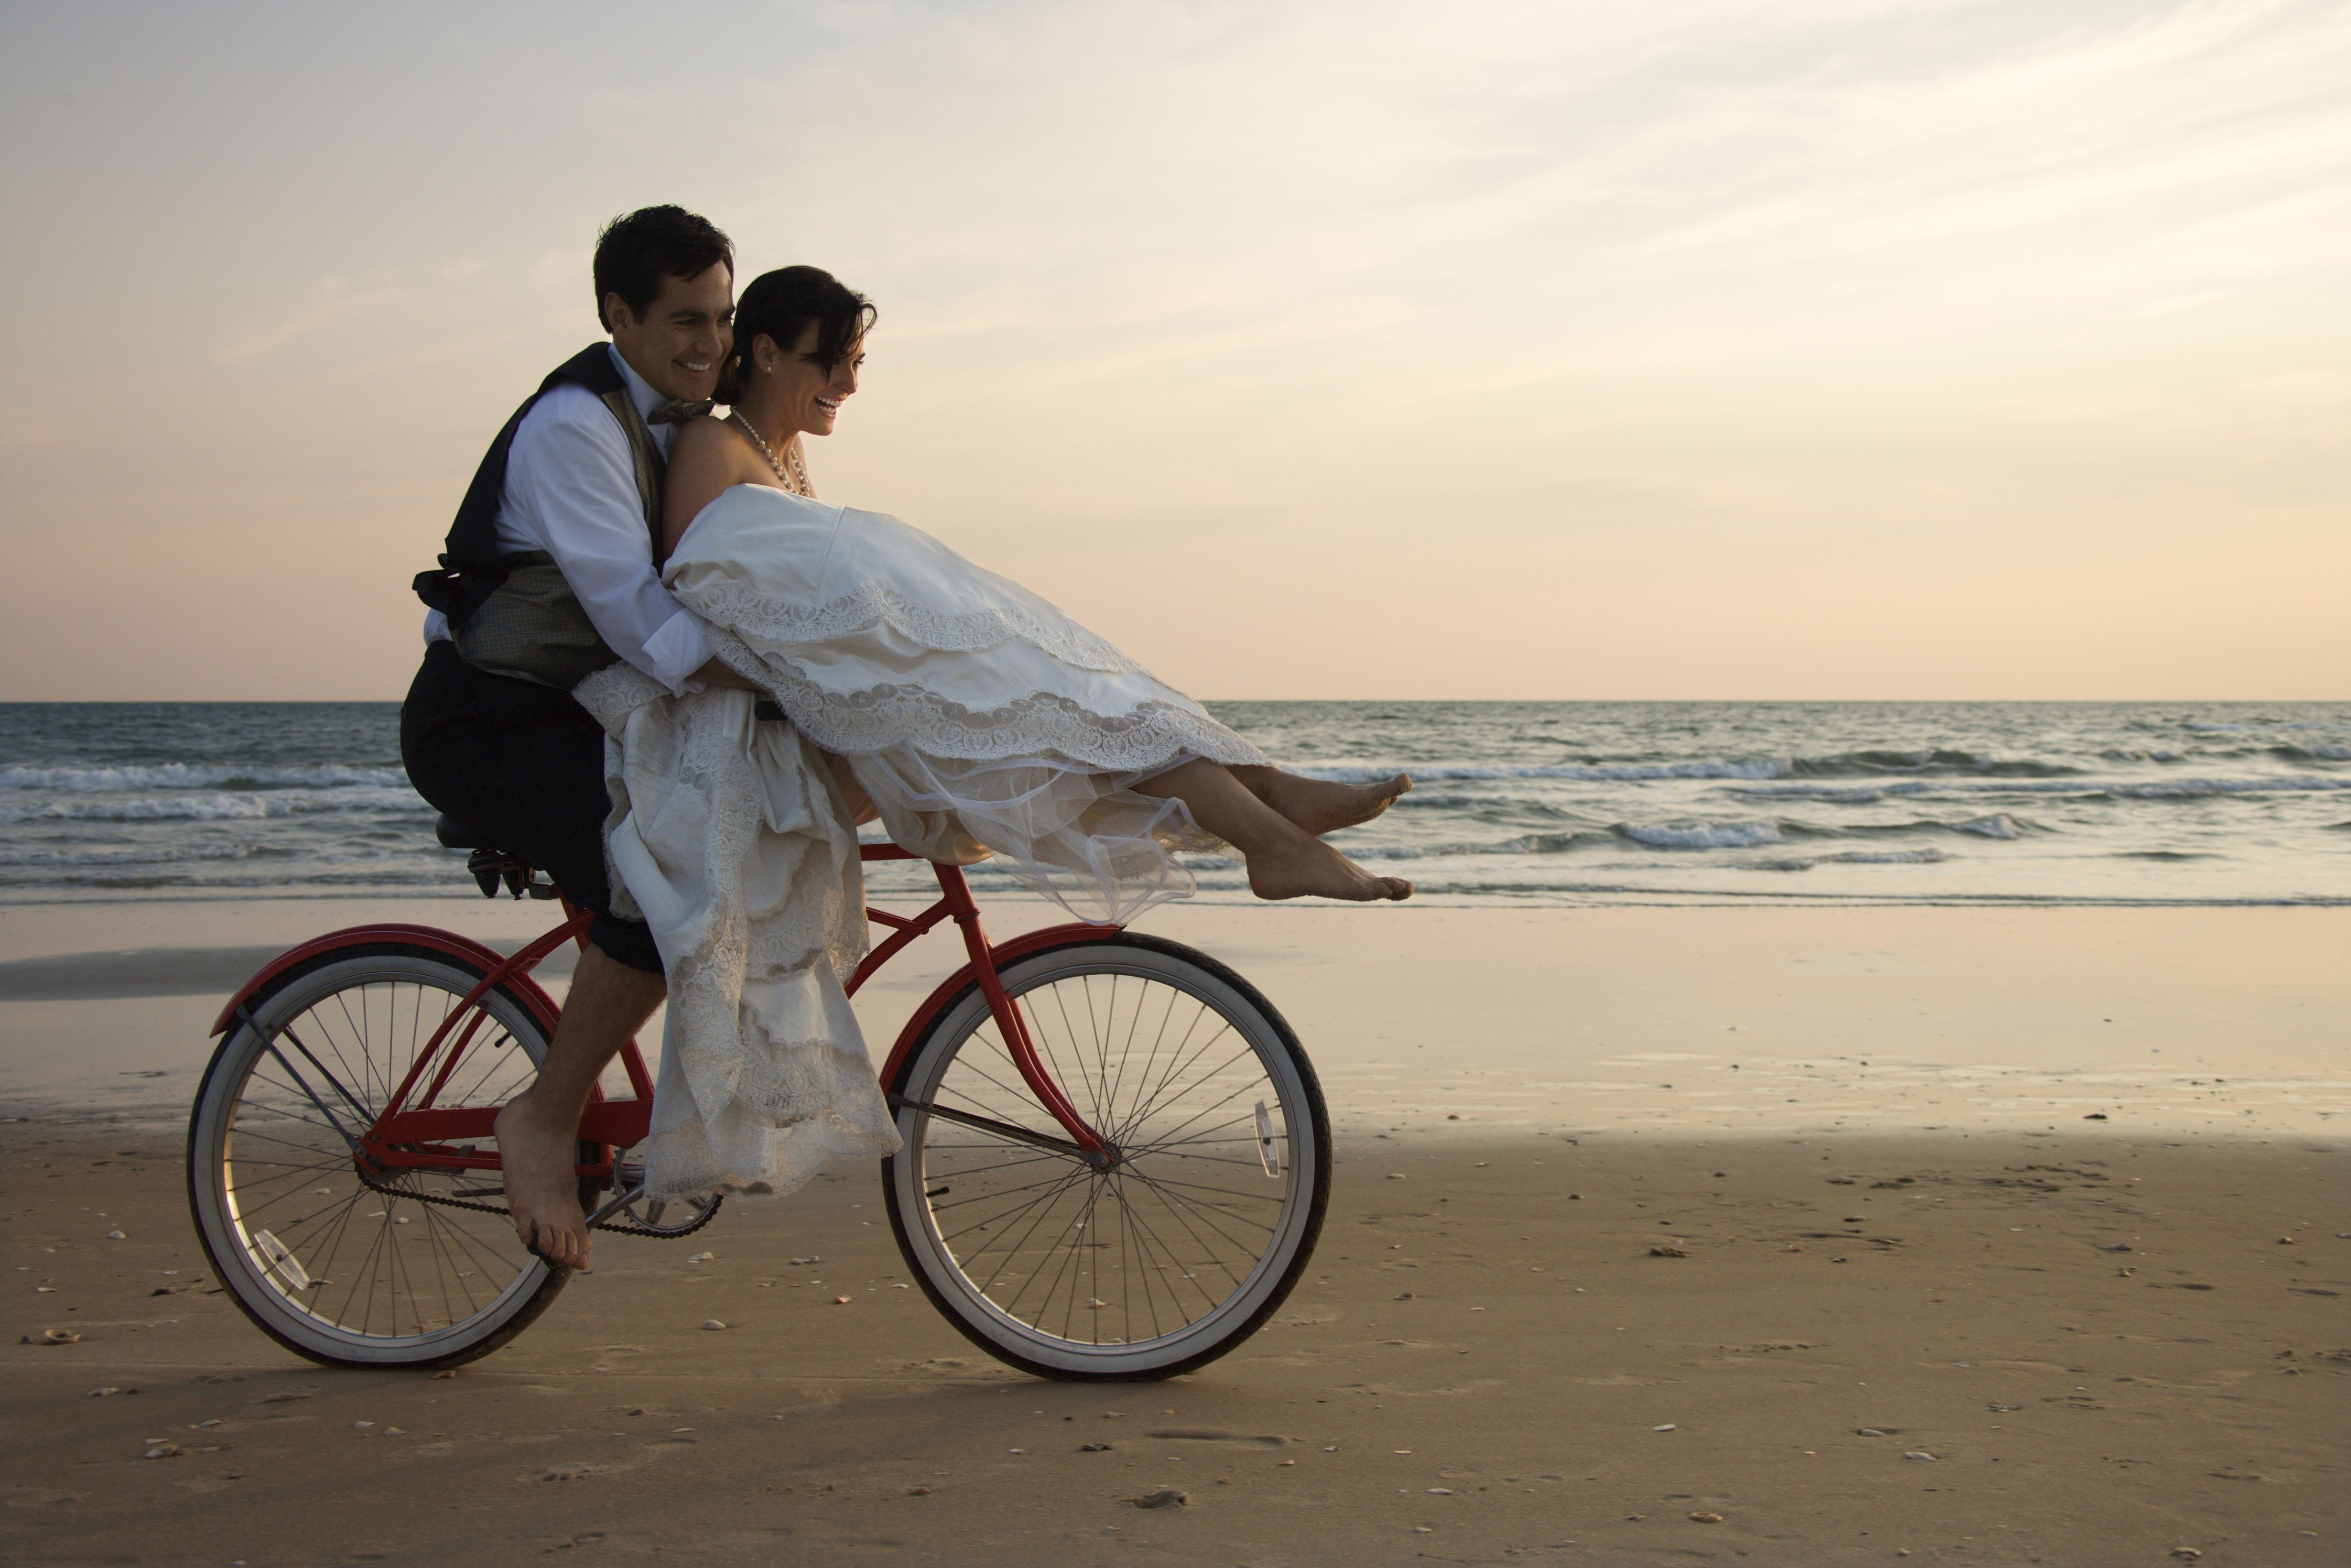 Premarital counseling get ready for marriage whether youre newly engaged or simply know youve found the one i know you want to make your relationship the best it can be solutioingenieria Images